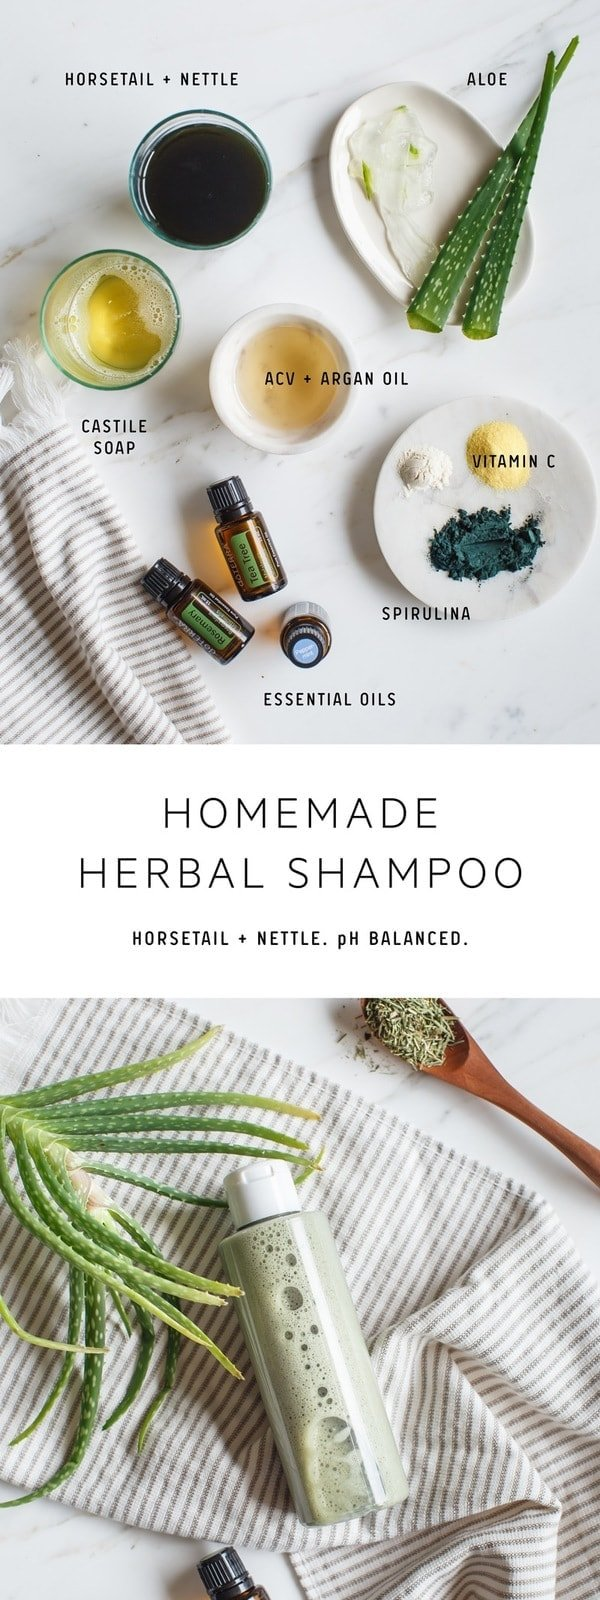 A natural, DIY shampoo made from horsetail and nettle to nourish, strengthen and promote hair growth, with spirulina, aloe vera and essential oils. #naturalshampoo #homemadeshampoo #diyshampoo #diybeauty #diyhaircare #herbalrecipes #herbalshampoo #nettle #horestail #doterra #doterrarecipes #diydoterra #AscensionKitchen